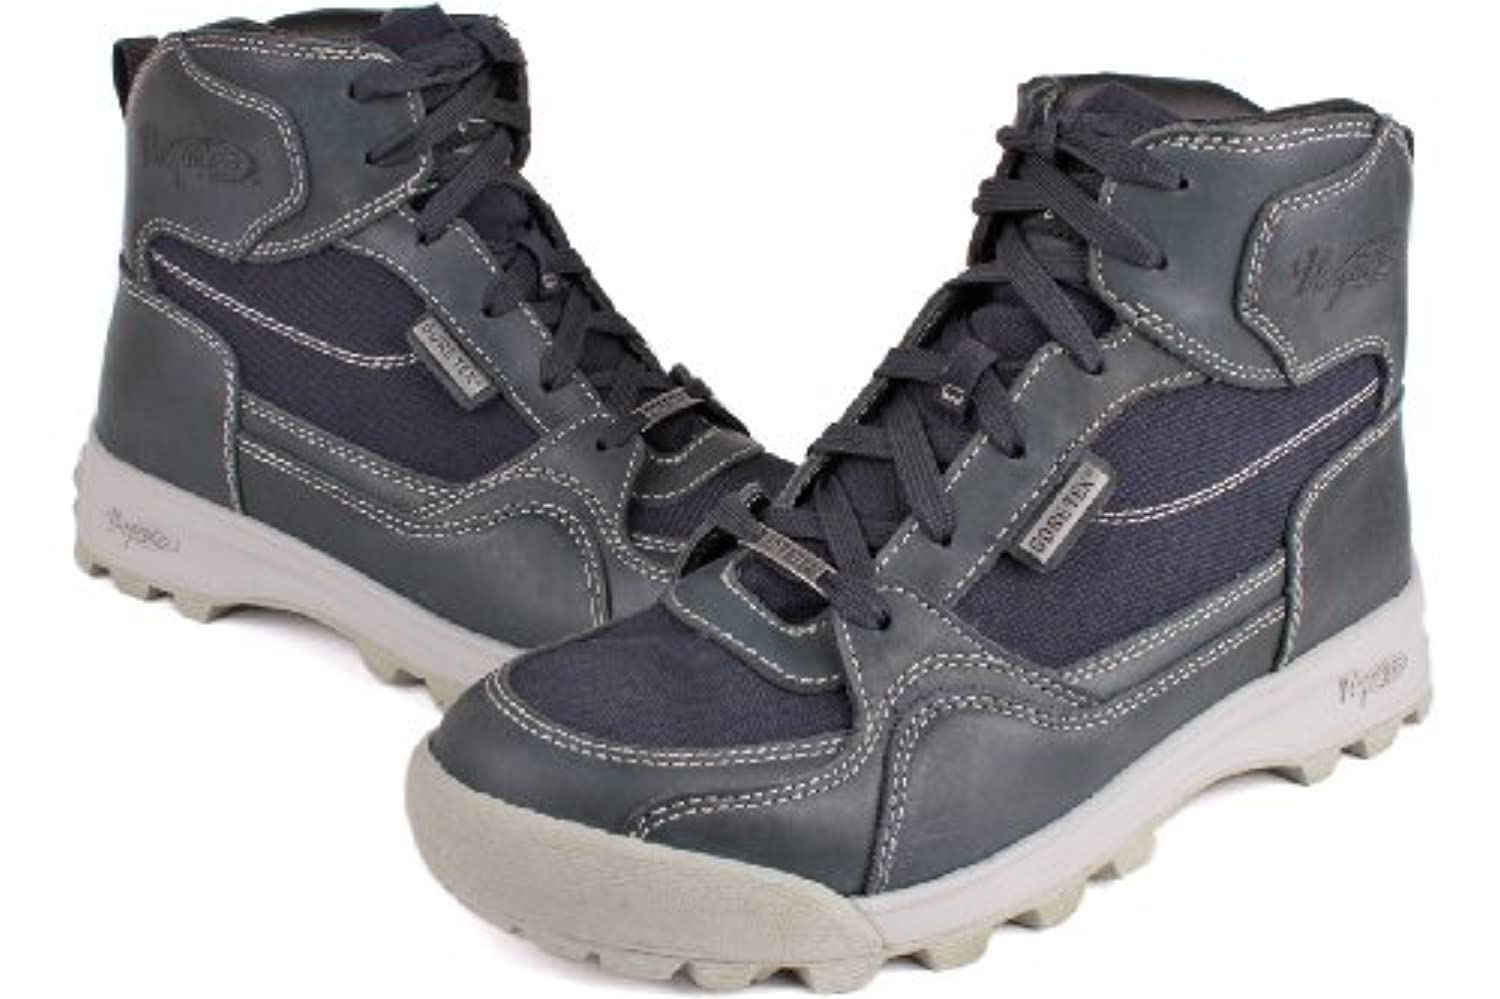 Vasque Retro Boots Vasque Men S Knockout Gore Tex Hiking Boot Mk 665 11 10 66 Buy Today